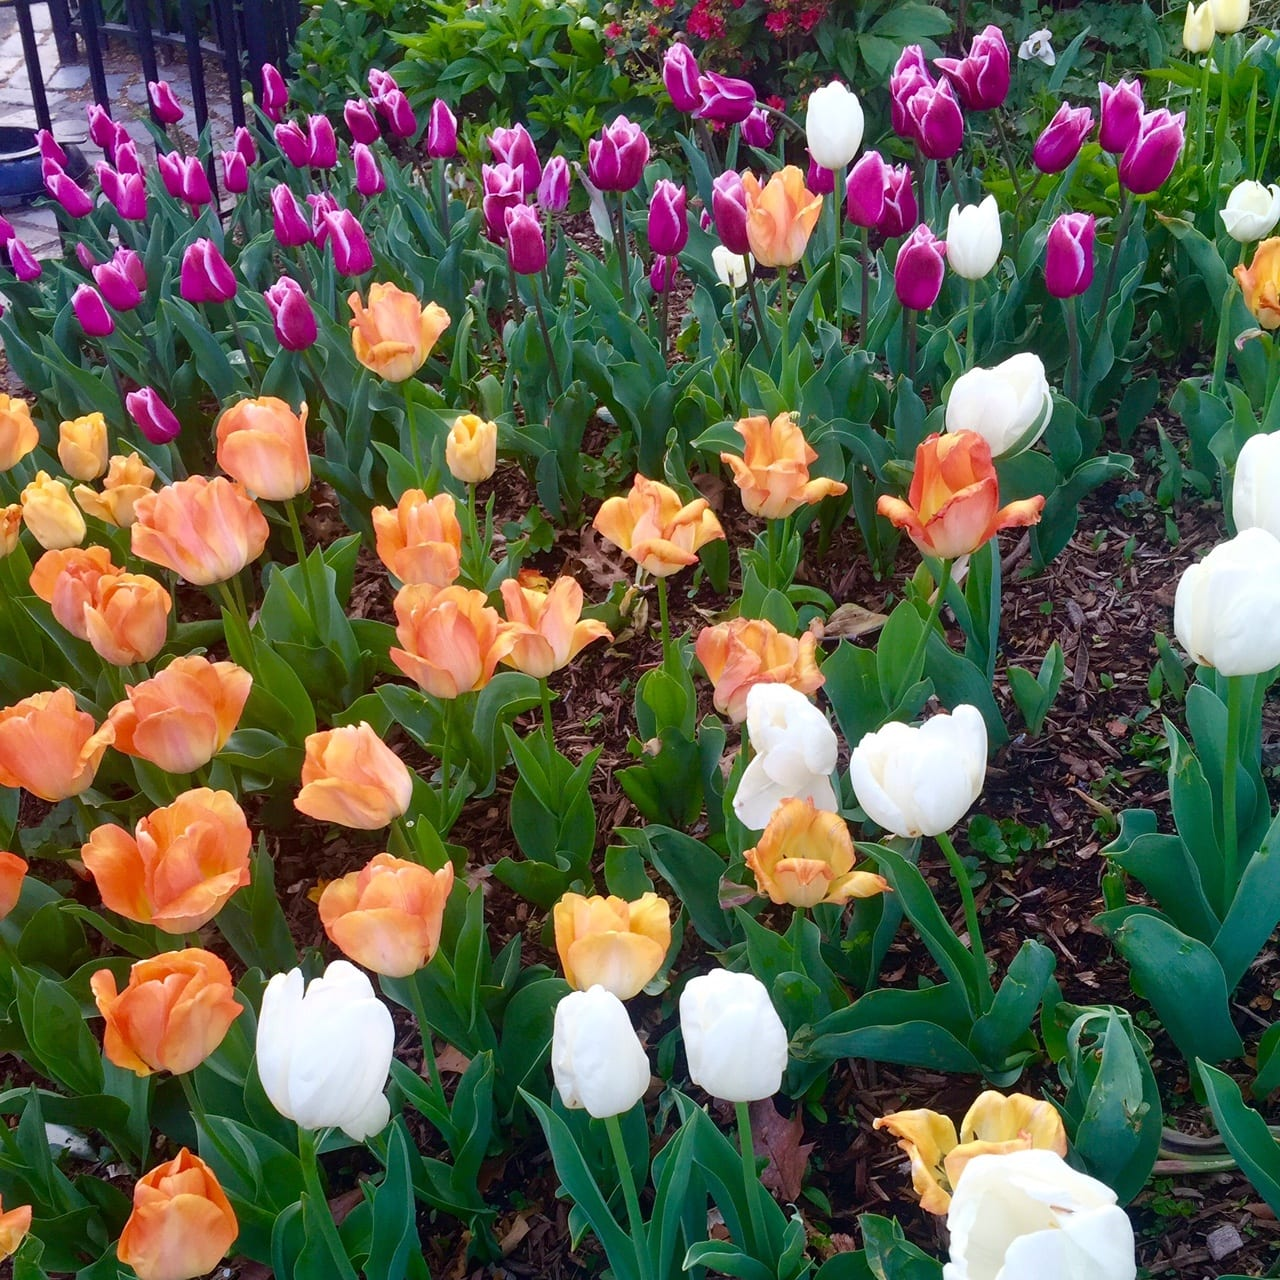 New York Tulips